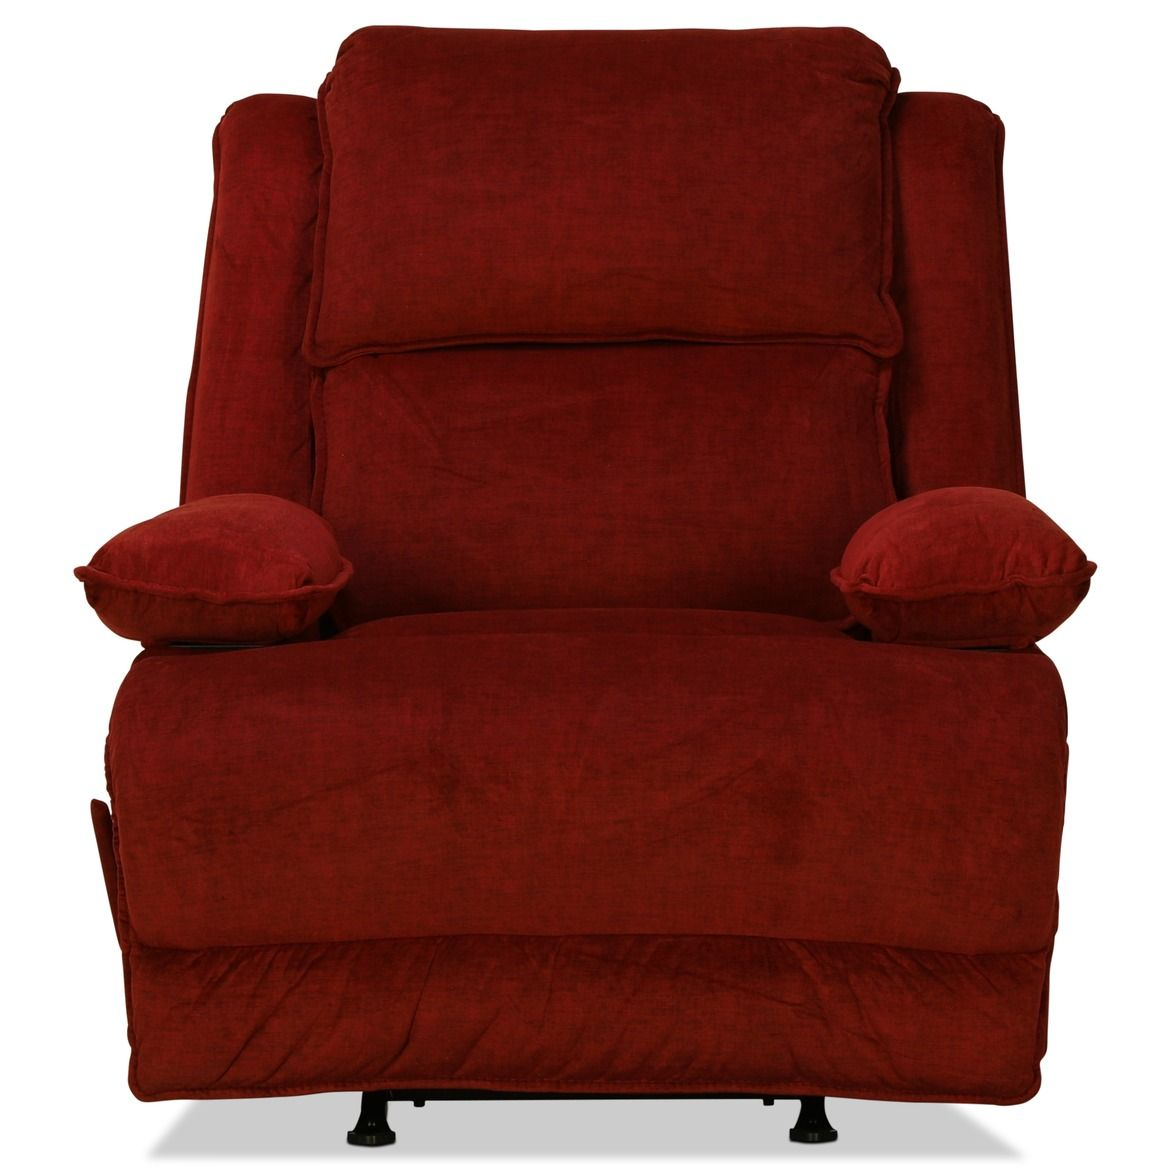 Levin Signature Recliner Red With Images Recliner Rocker Recliners Levin Furniture